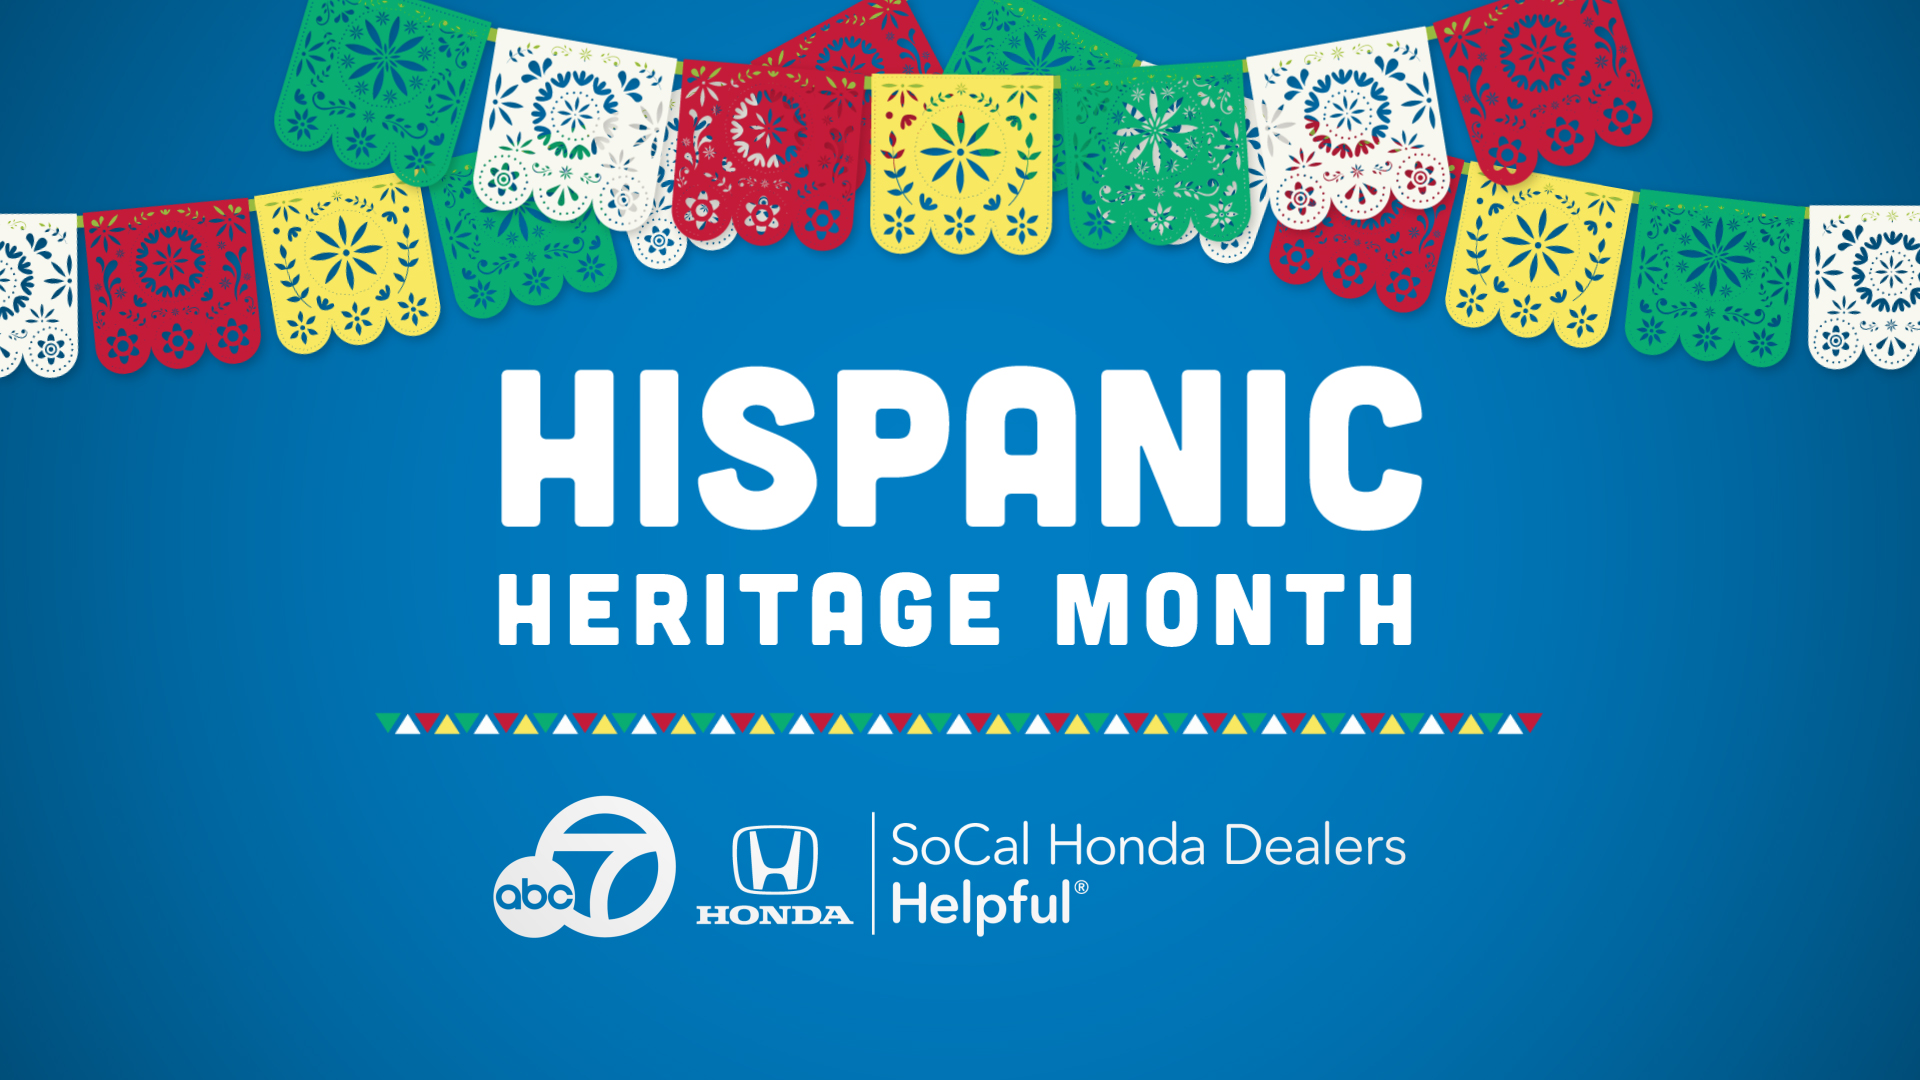 Celebrate Hispanic Heritage Month With Abc7 And The Socal